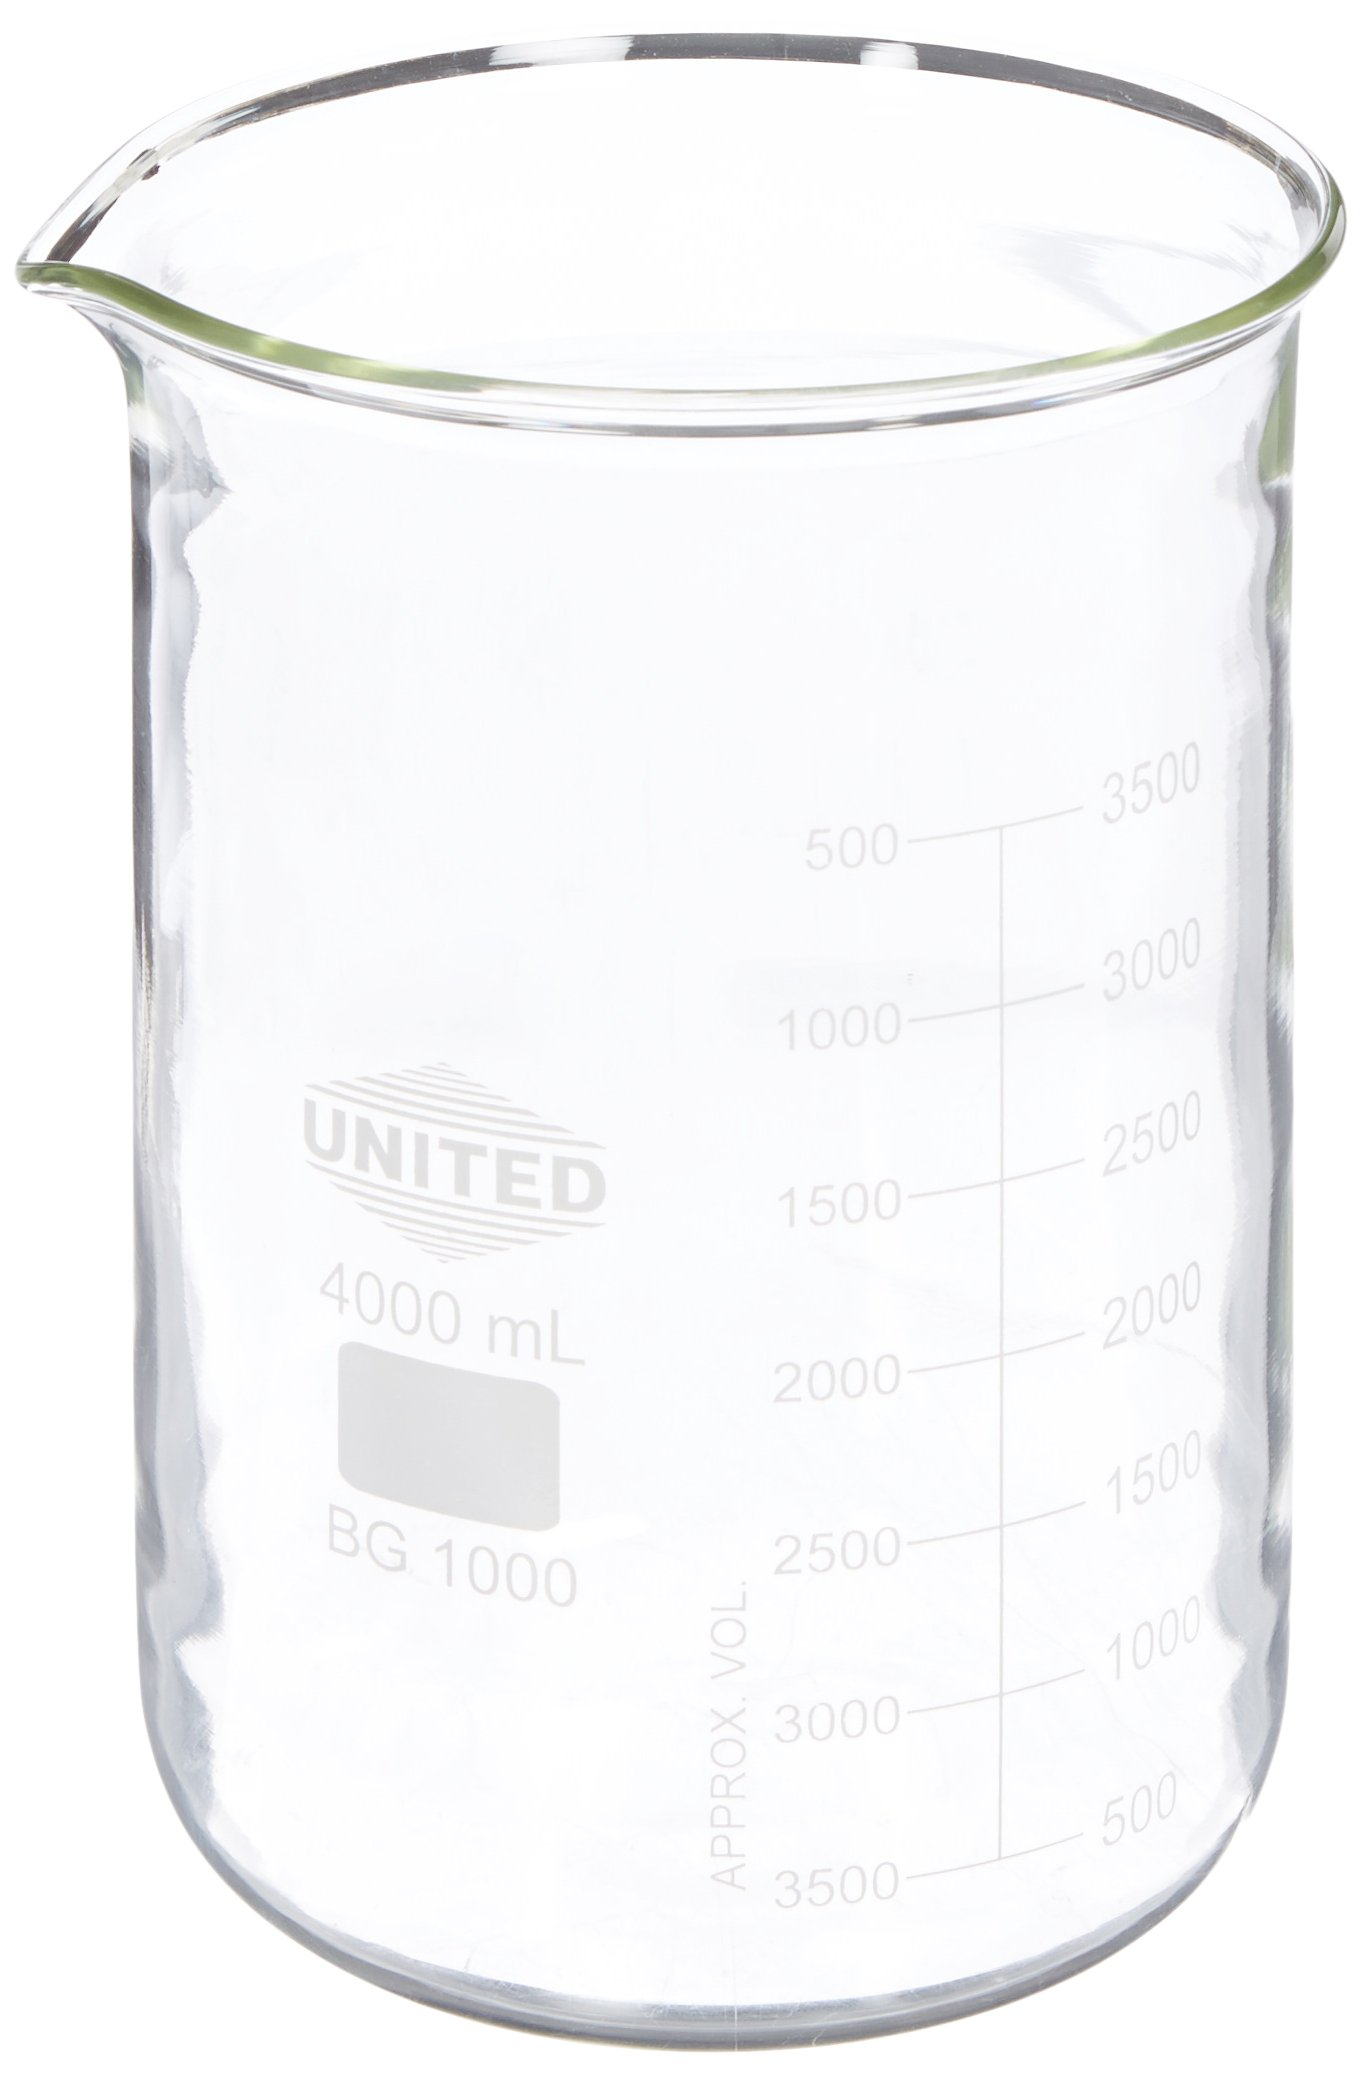 United Scientific BG1000-4000 Borosilicate Glass Low Form Beaker, 4000ml Capacity